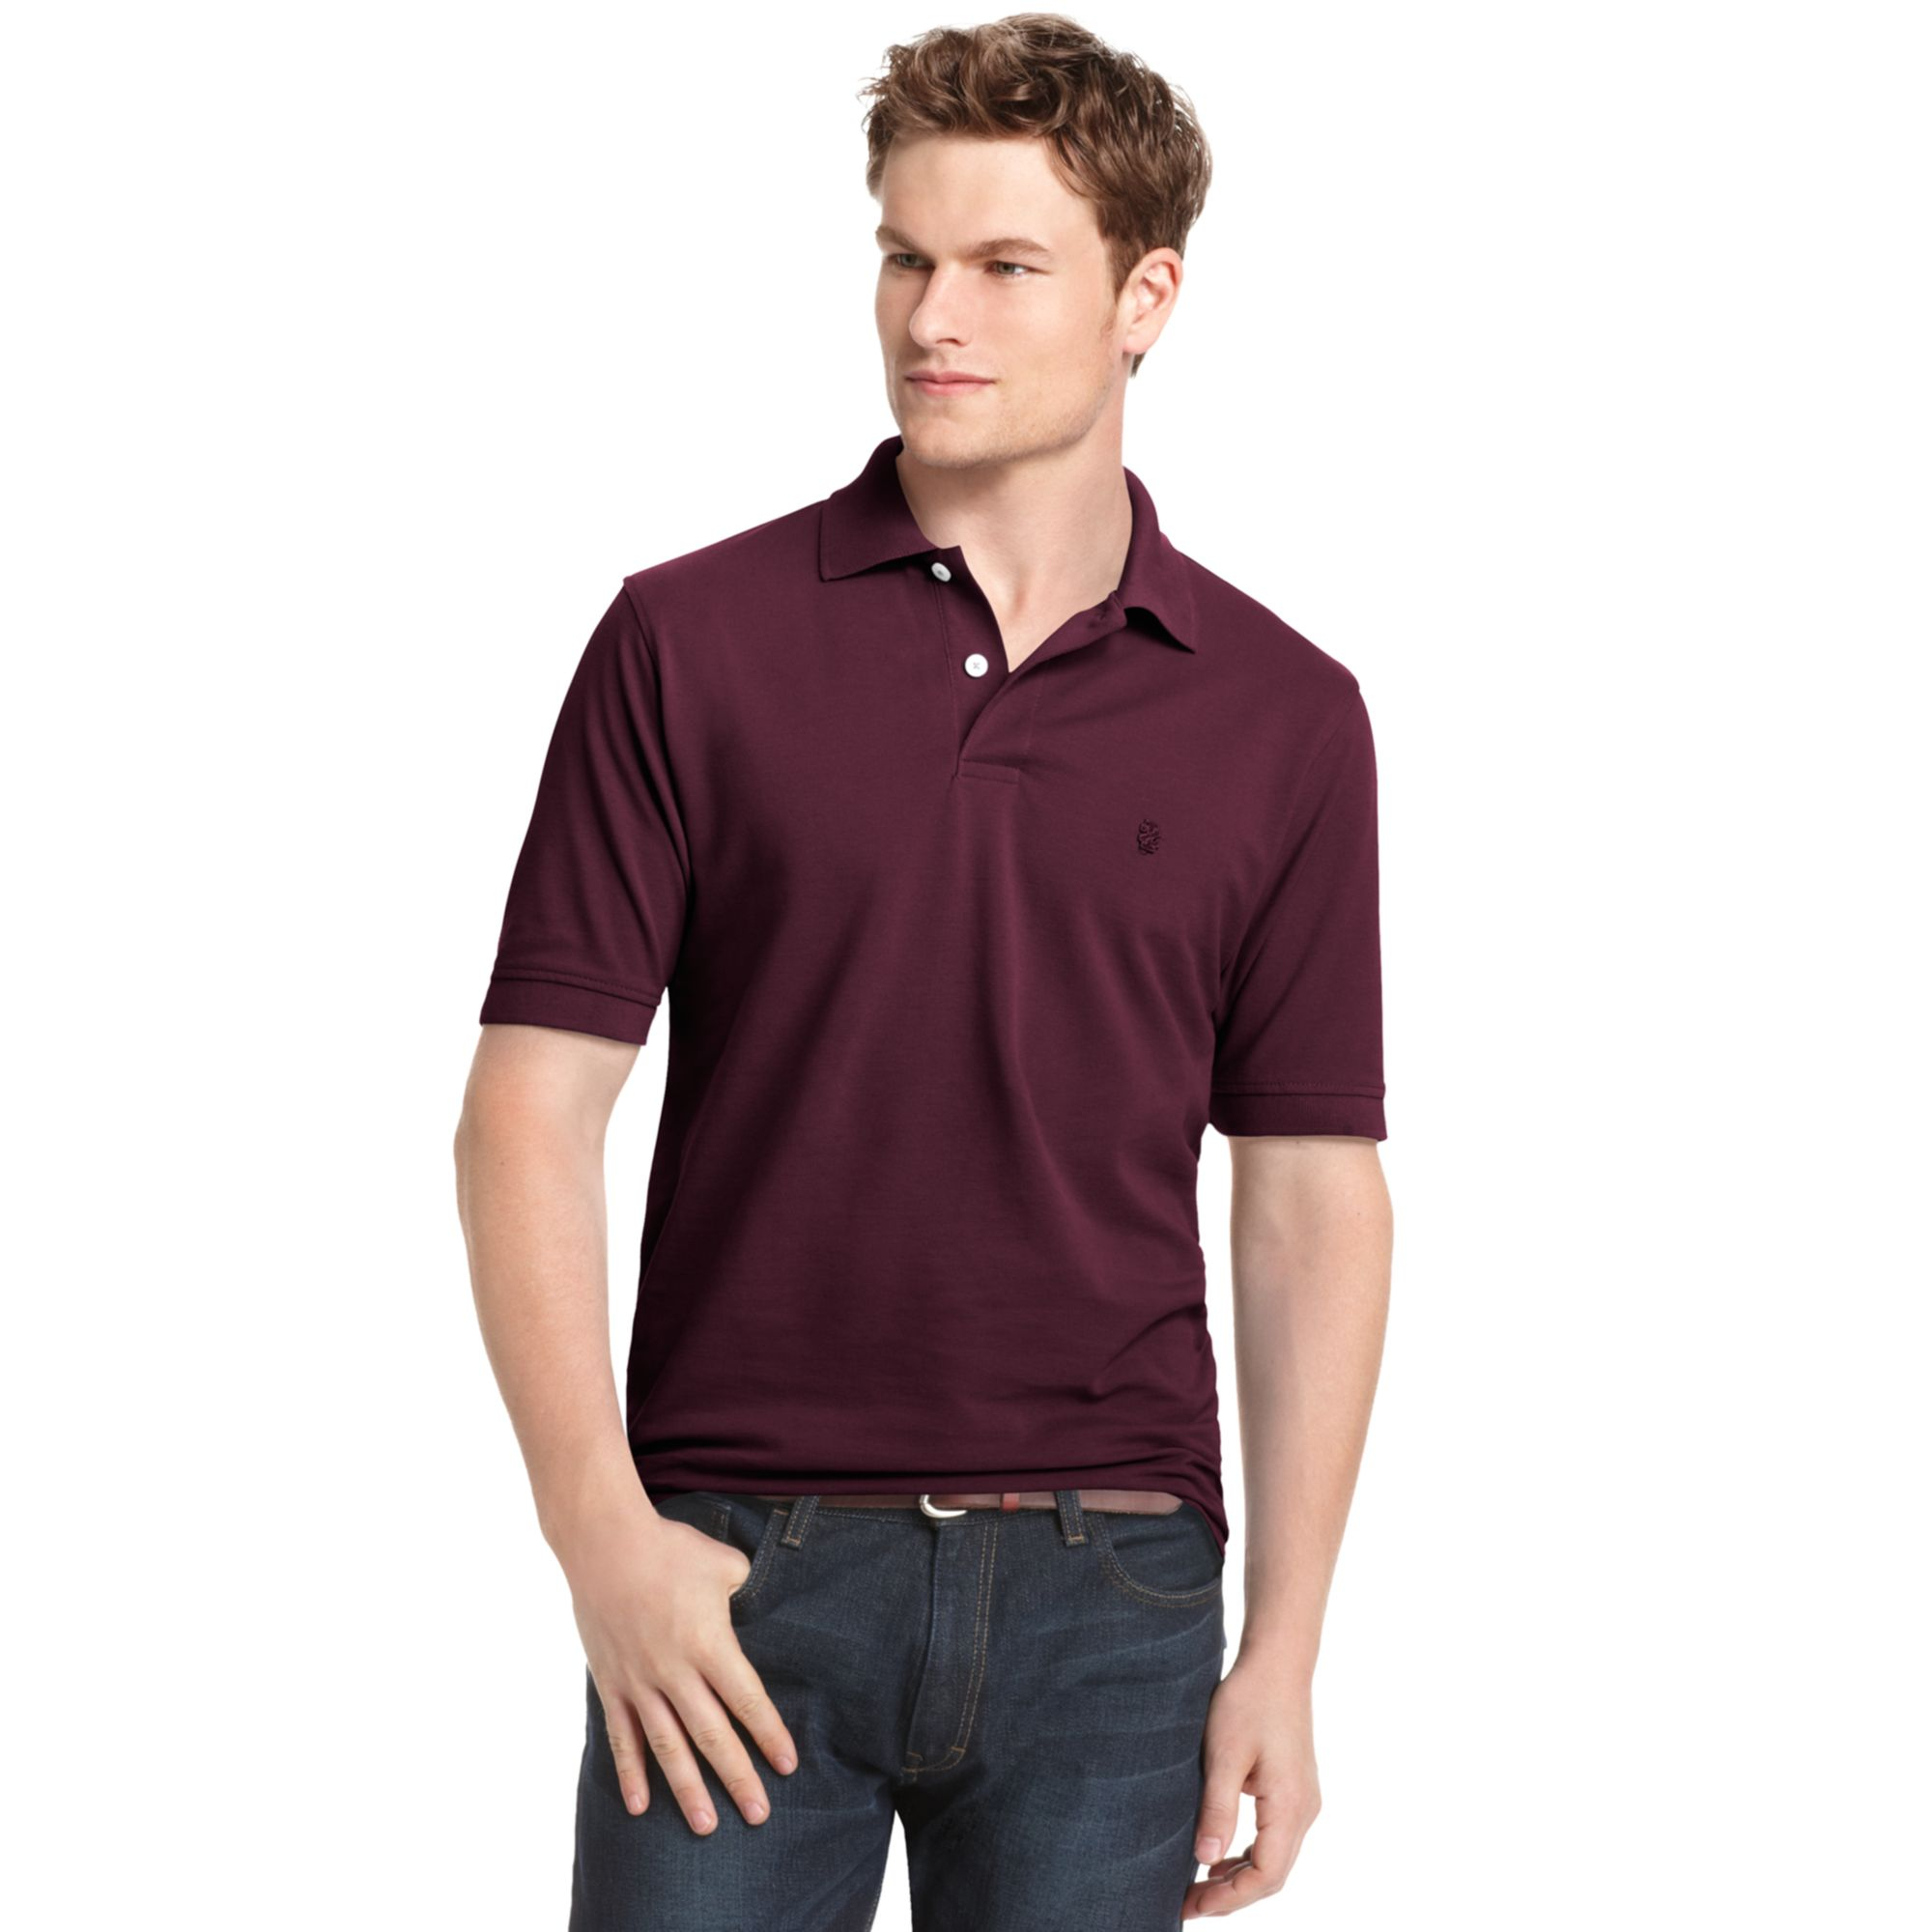 Izod big and tall shirt short sleeve pique polo in purple for Big and tall custom polo shirts